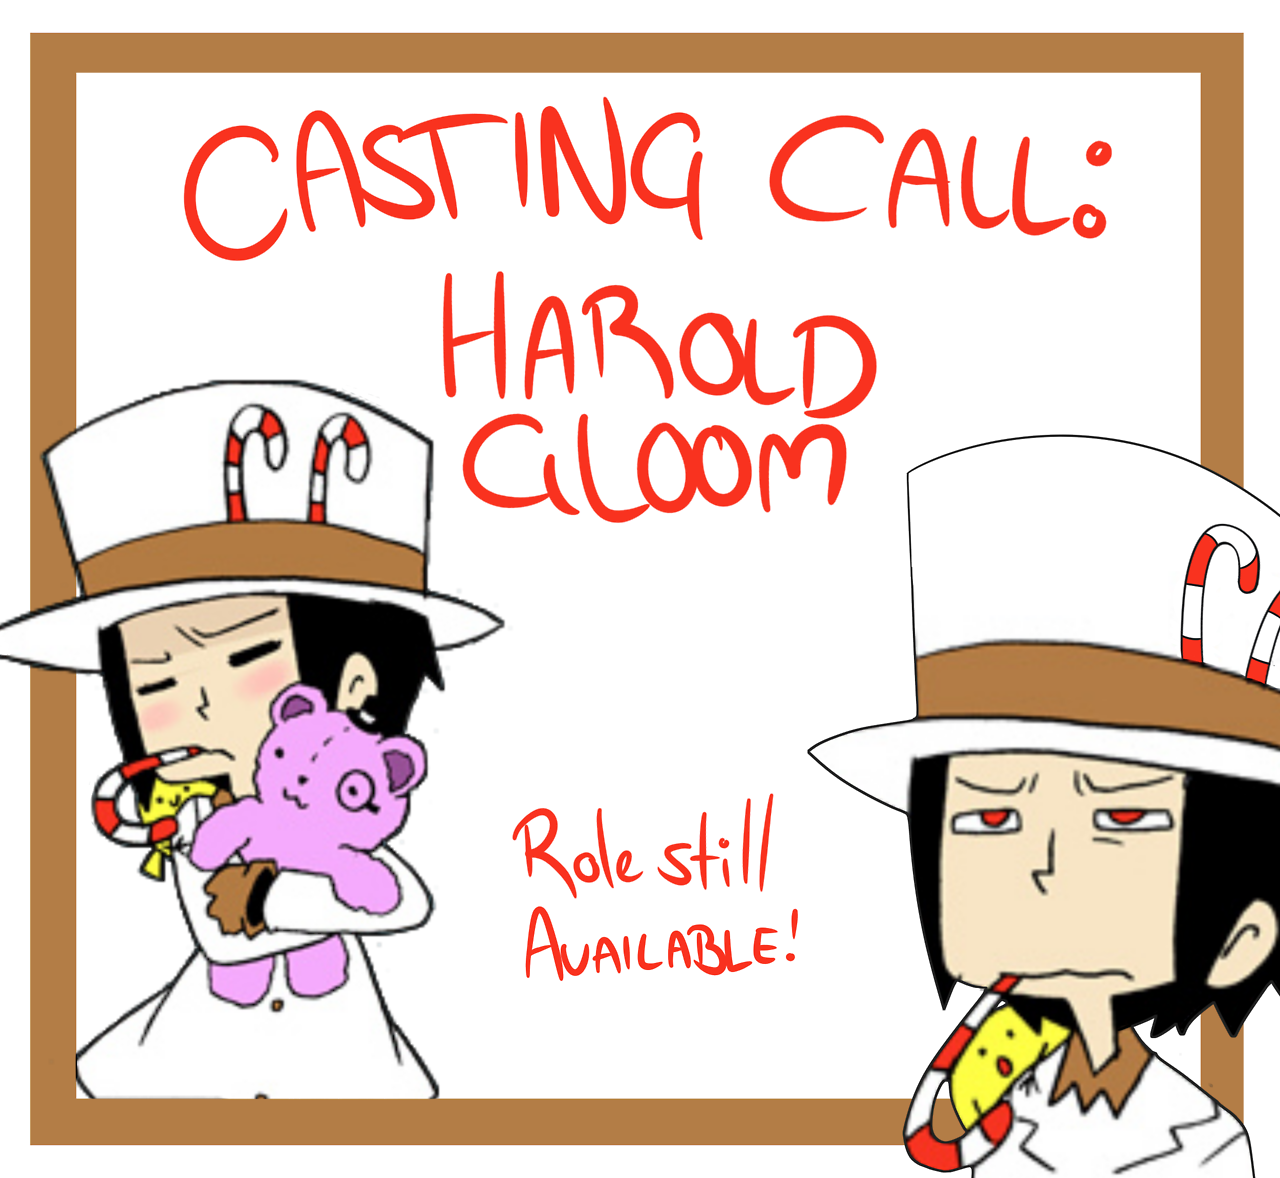 Gloomy clipart awful ゚・:*✧ ADVERTISEMENT  ✧゚ ROLEPLAY